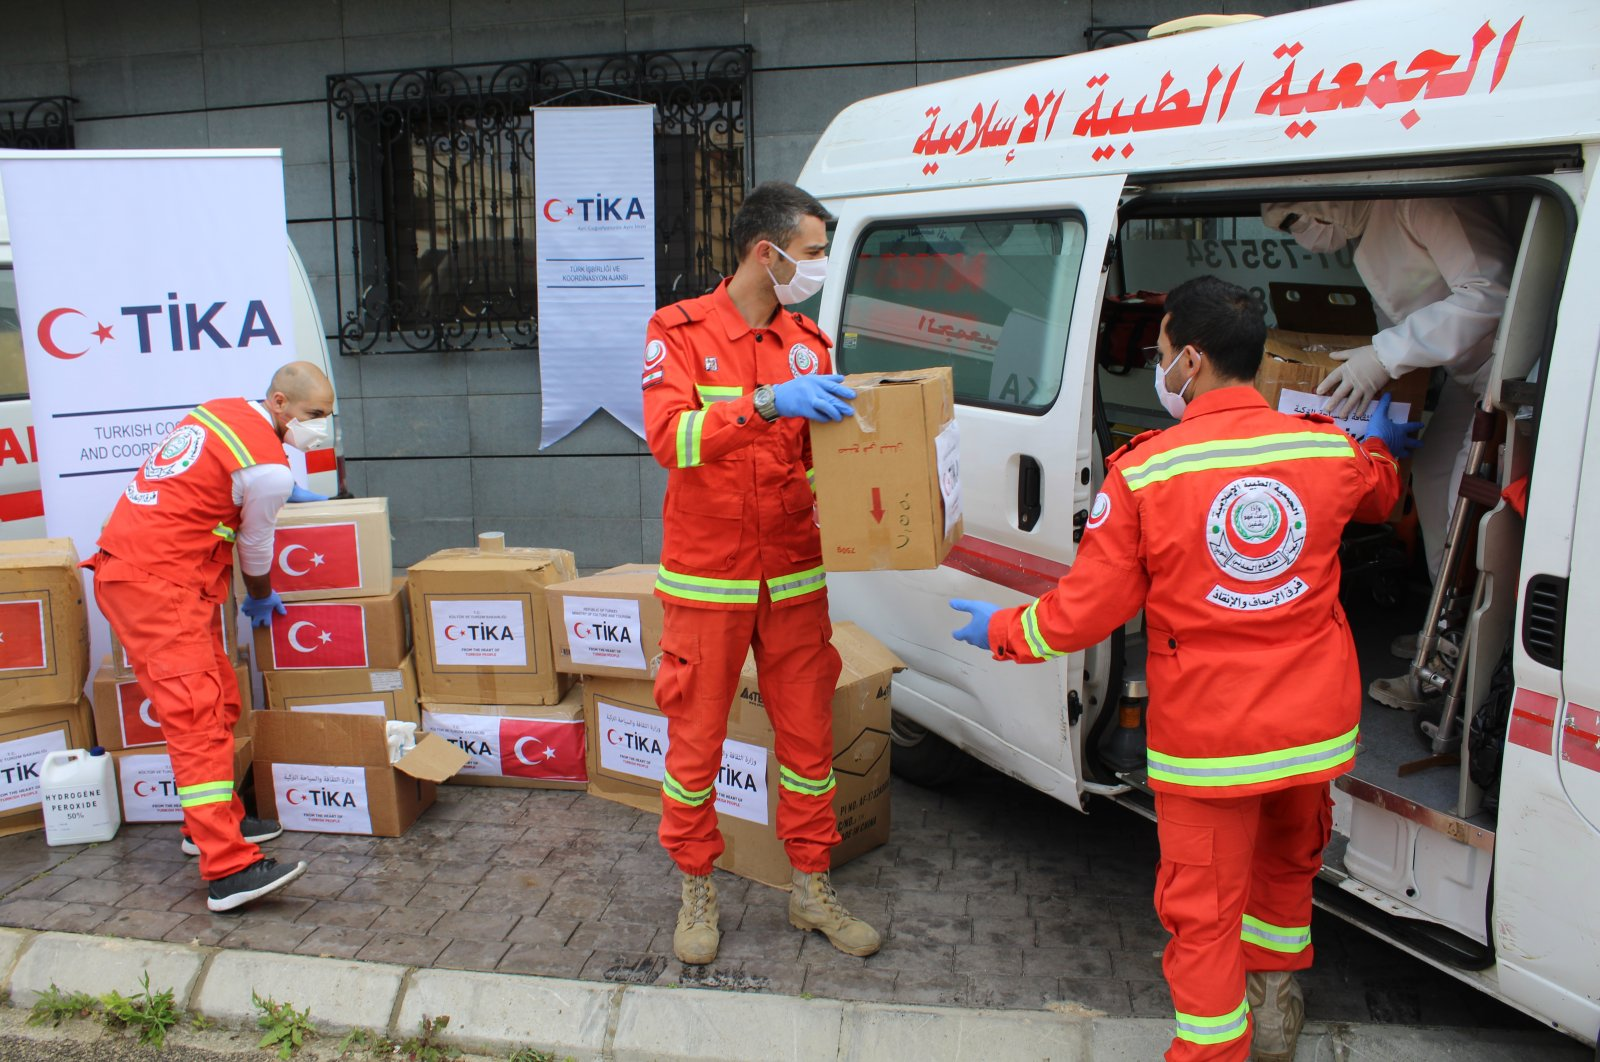 TİKA workers load medical supplies into an ambulance in Lebanon, April 15, 2020. (AA Photo)